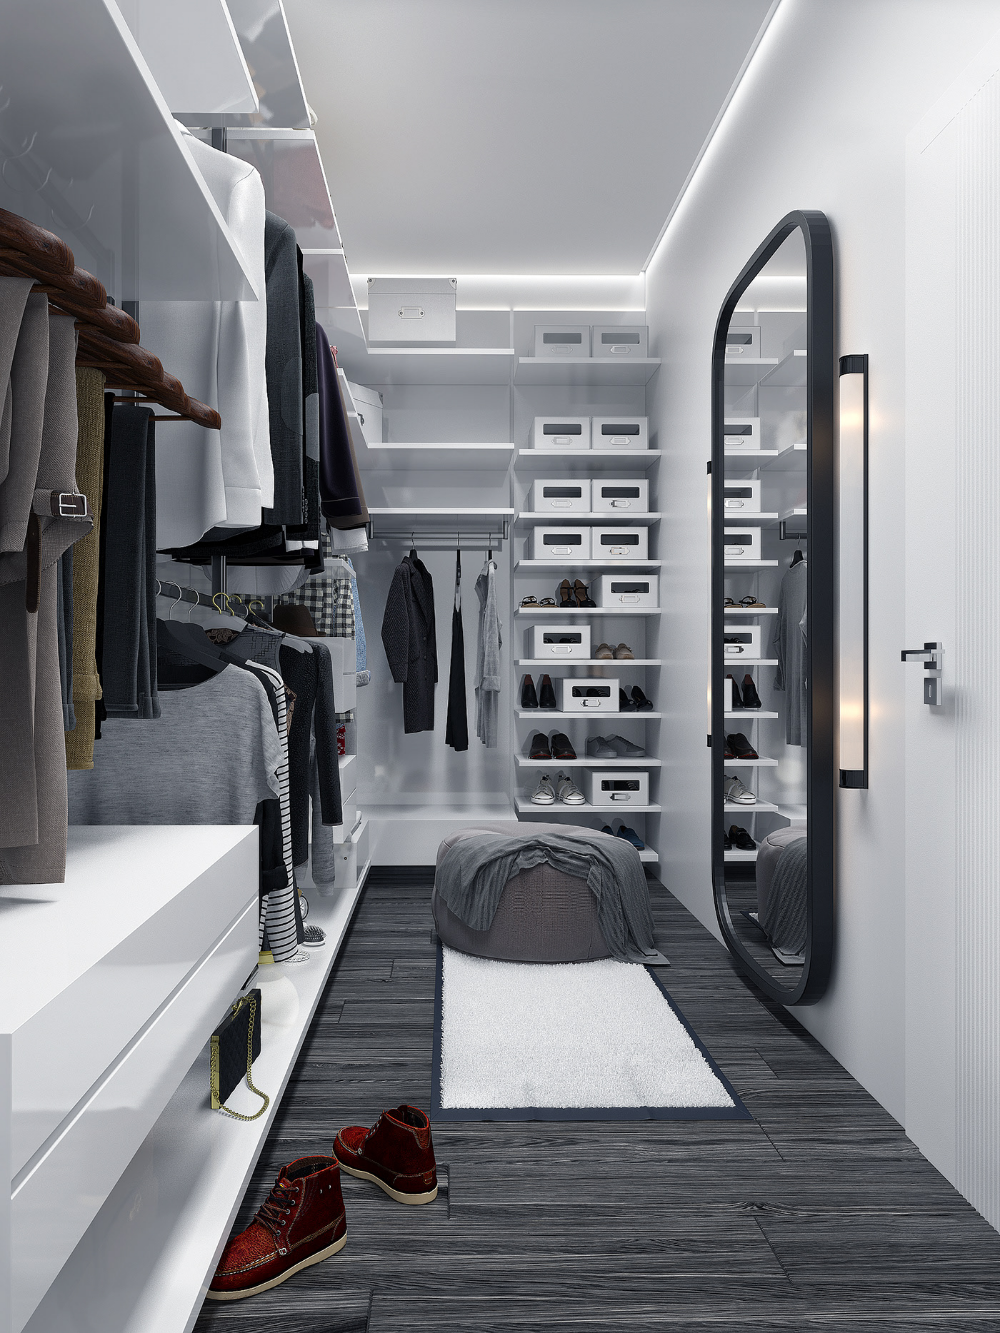 Autodesk Room Design: Idea By Minty NYC On Closet